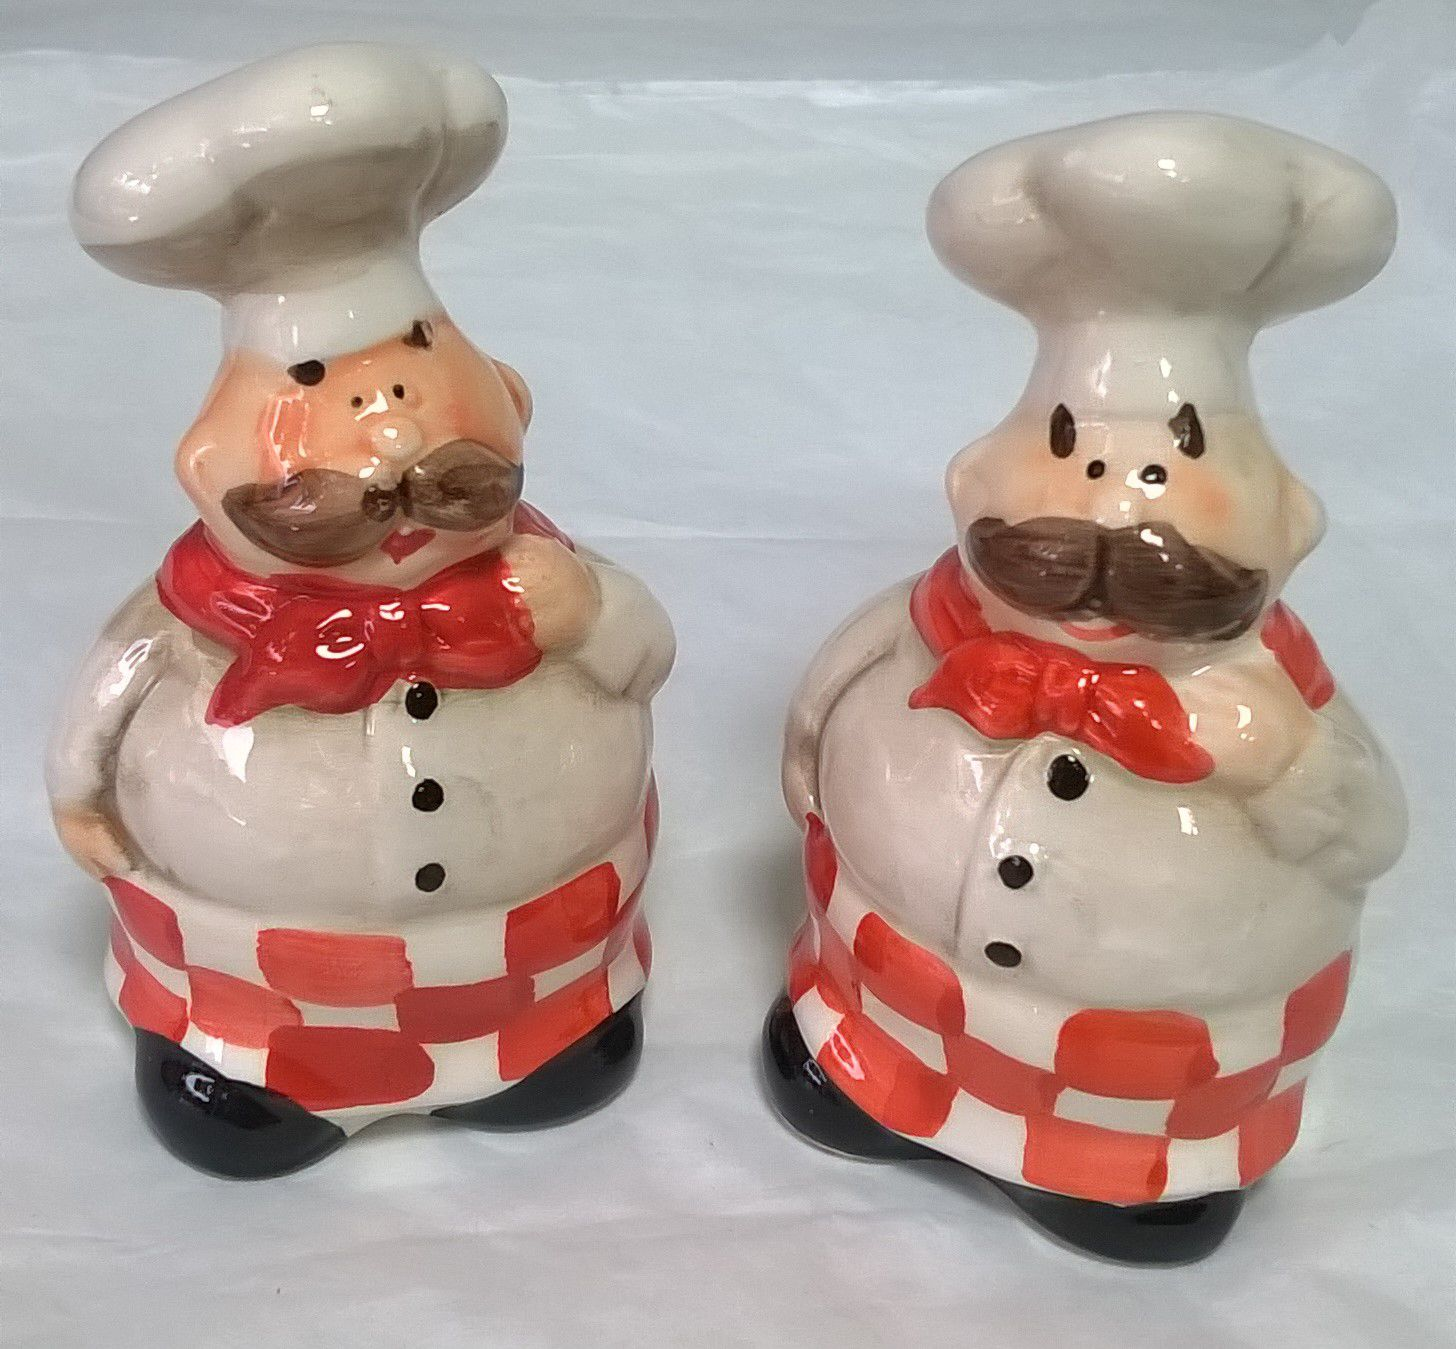 Jolly Chefs Salt and Pepper Set by Giftworks 4058